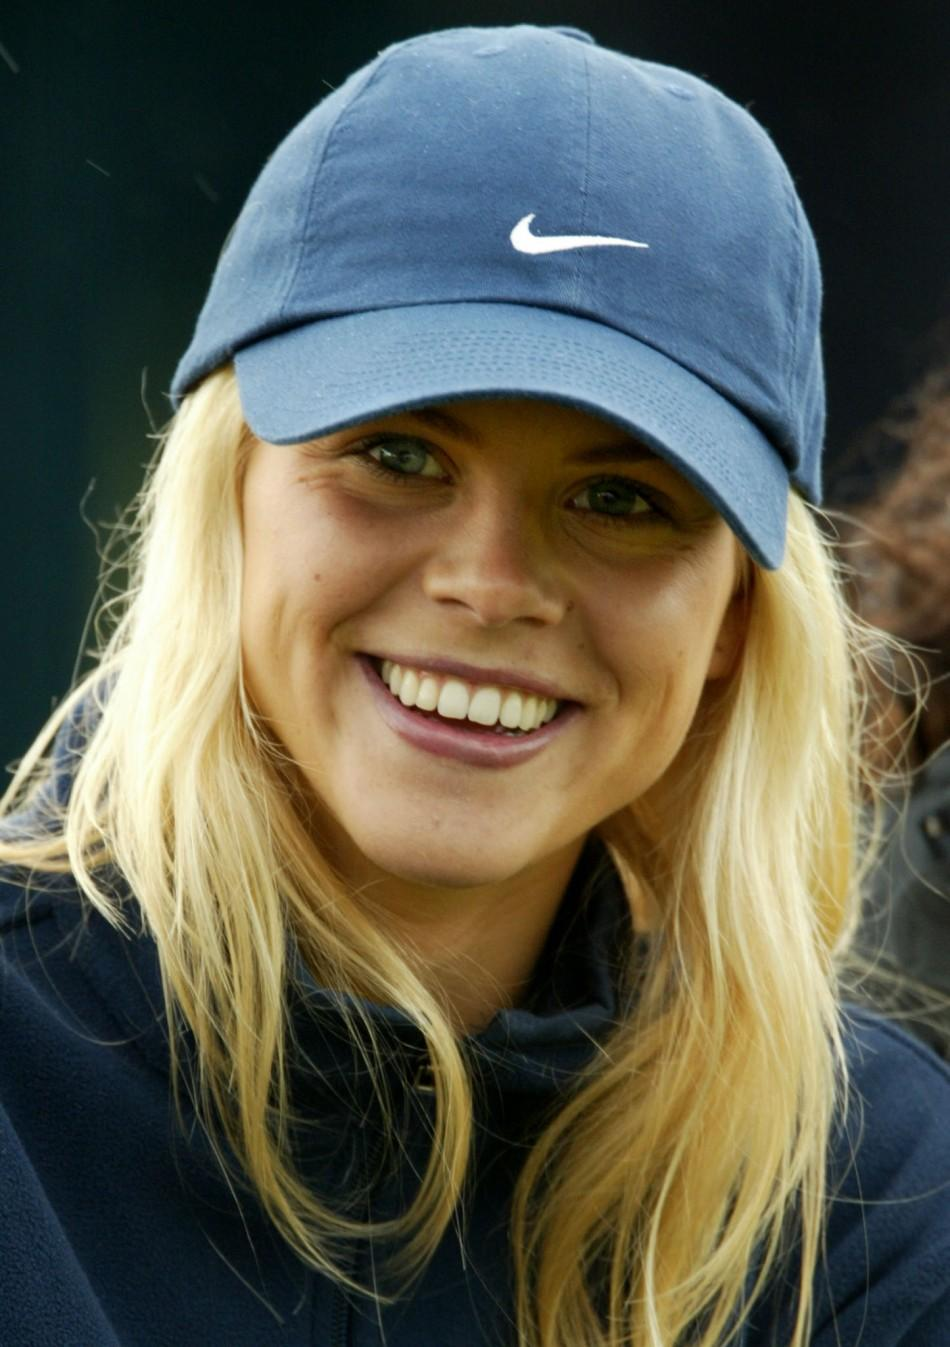 Elin Nordegren married Tiger Woods in 2004